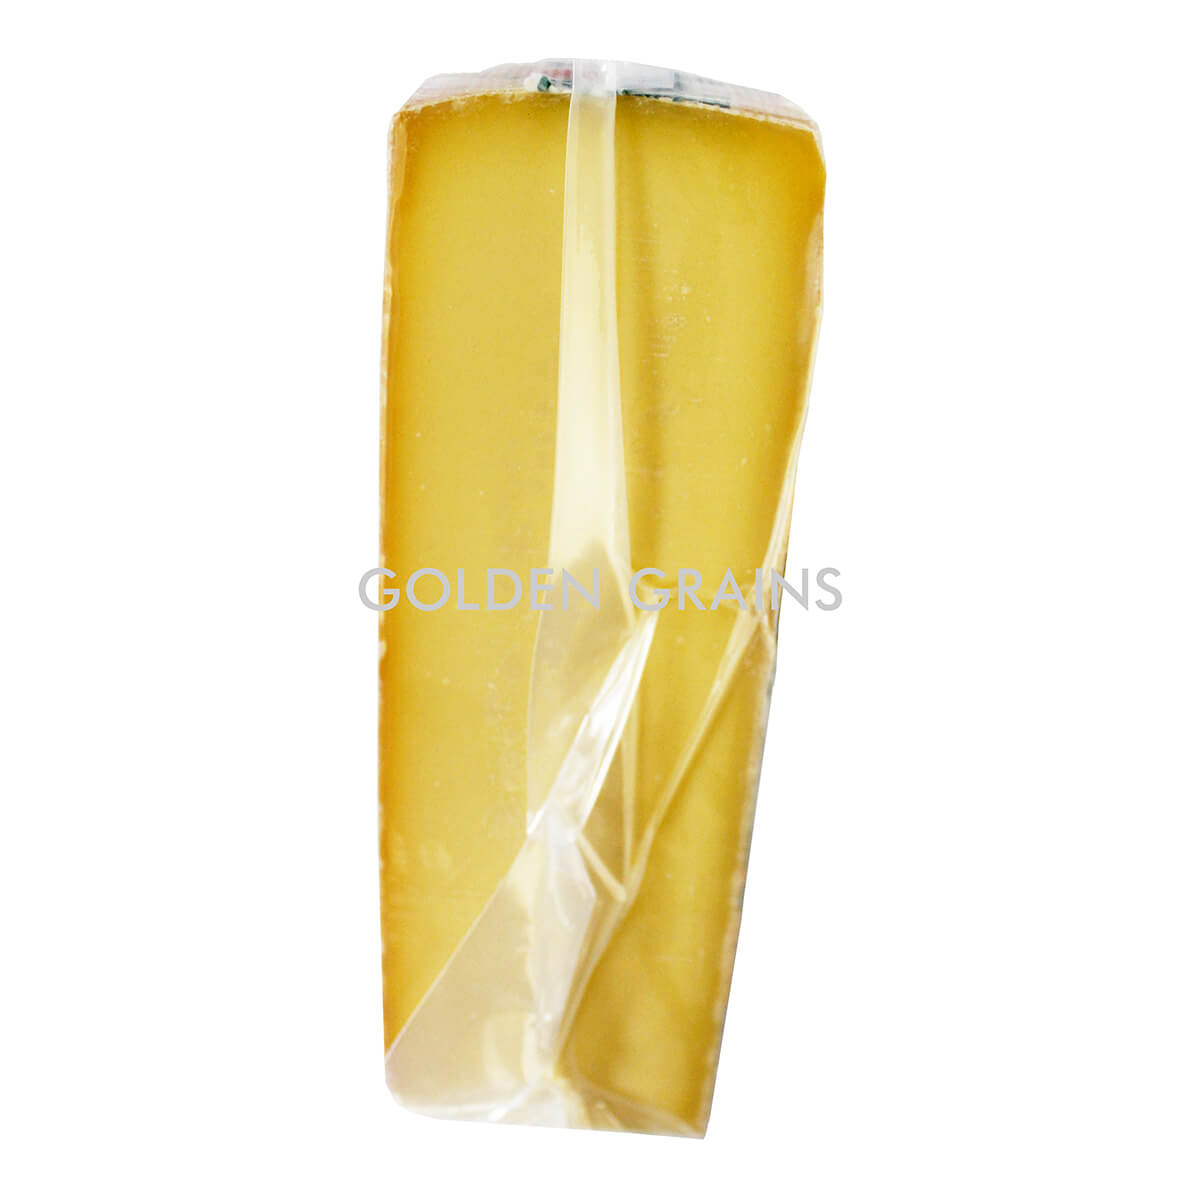 Golden Grains Dubai Export - Comte - Other Side.jpg